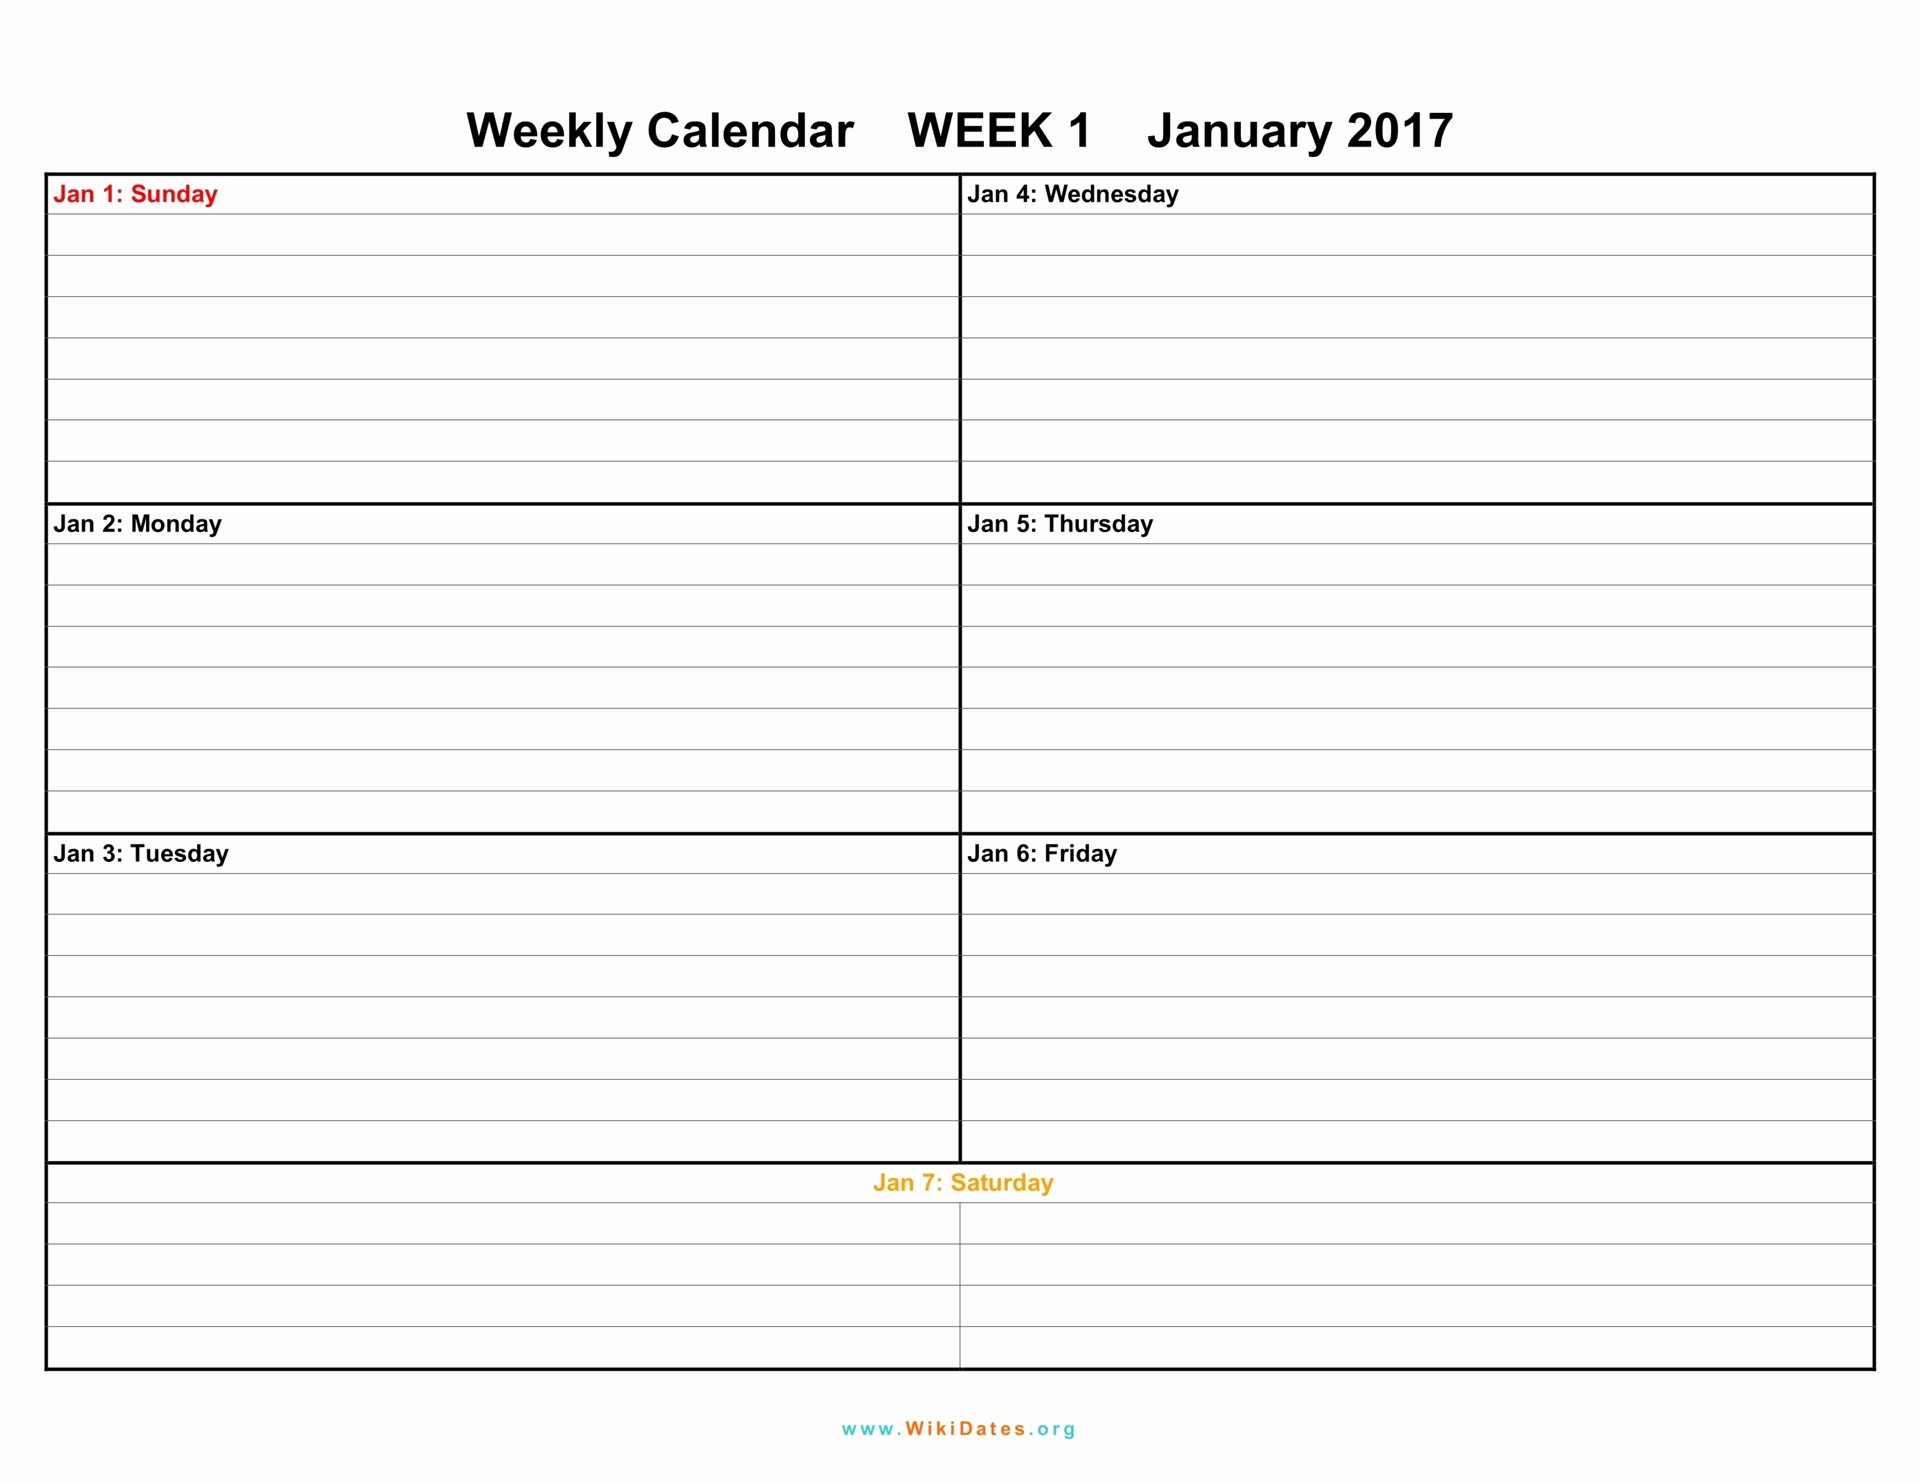 Free Printable Weekly Calendars 2017 Inspirational Weekly Calendar Download Weekly Calendar 2017 and 2018